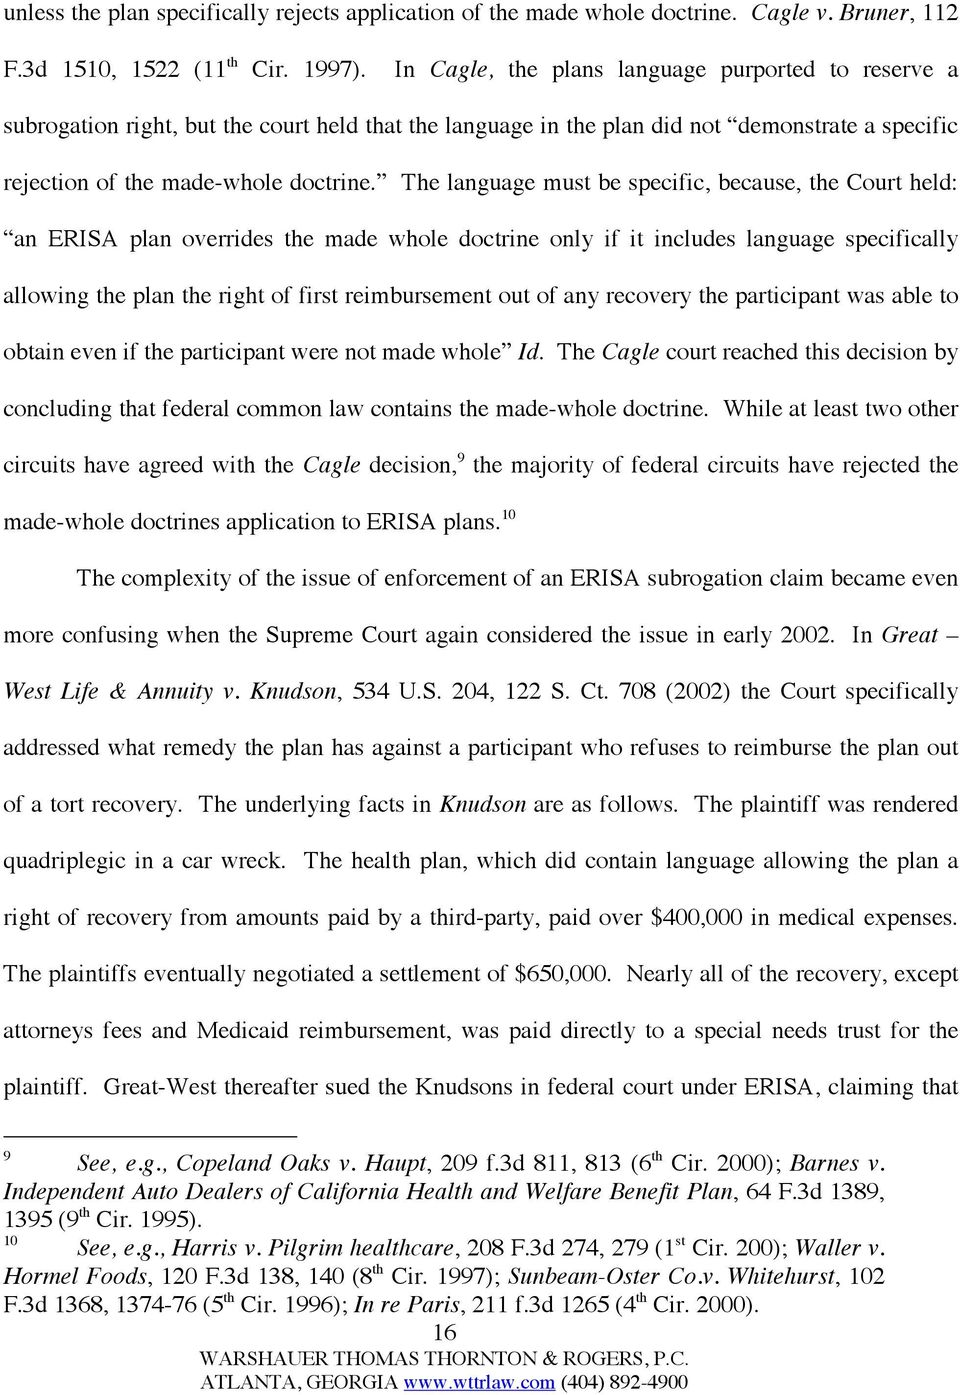 The language must be specific, because, the Court held: an ERISA plan overrides the made whole doctrine only if it includes language specifically allowing the plan the right of first reimbursement